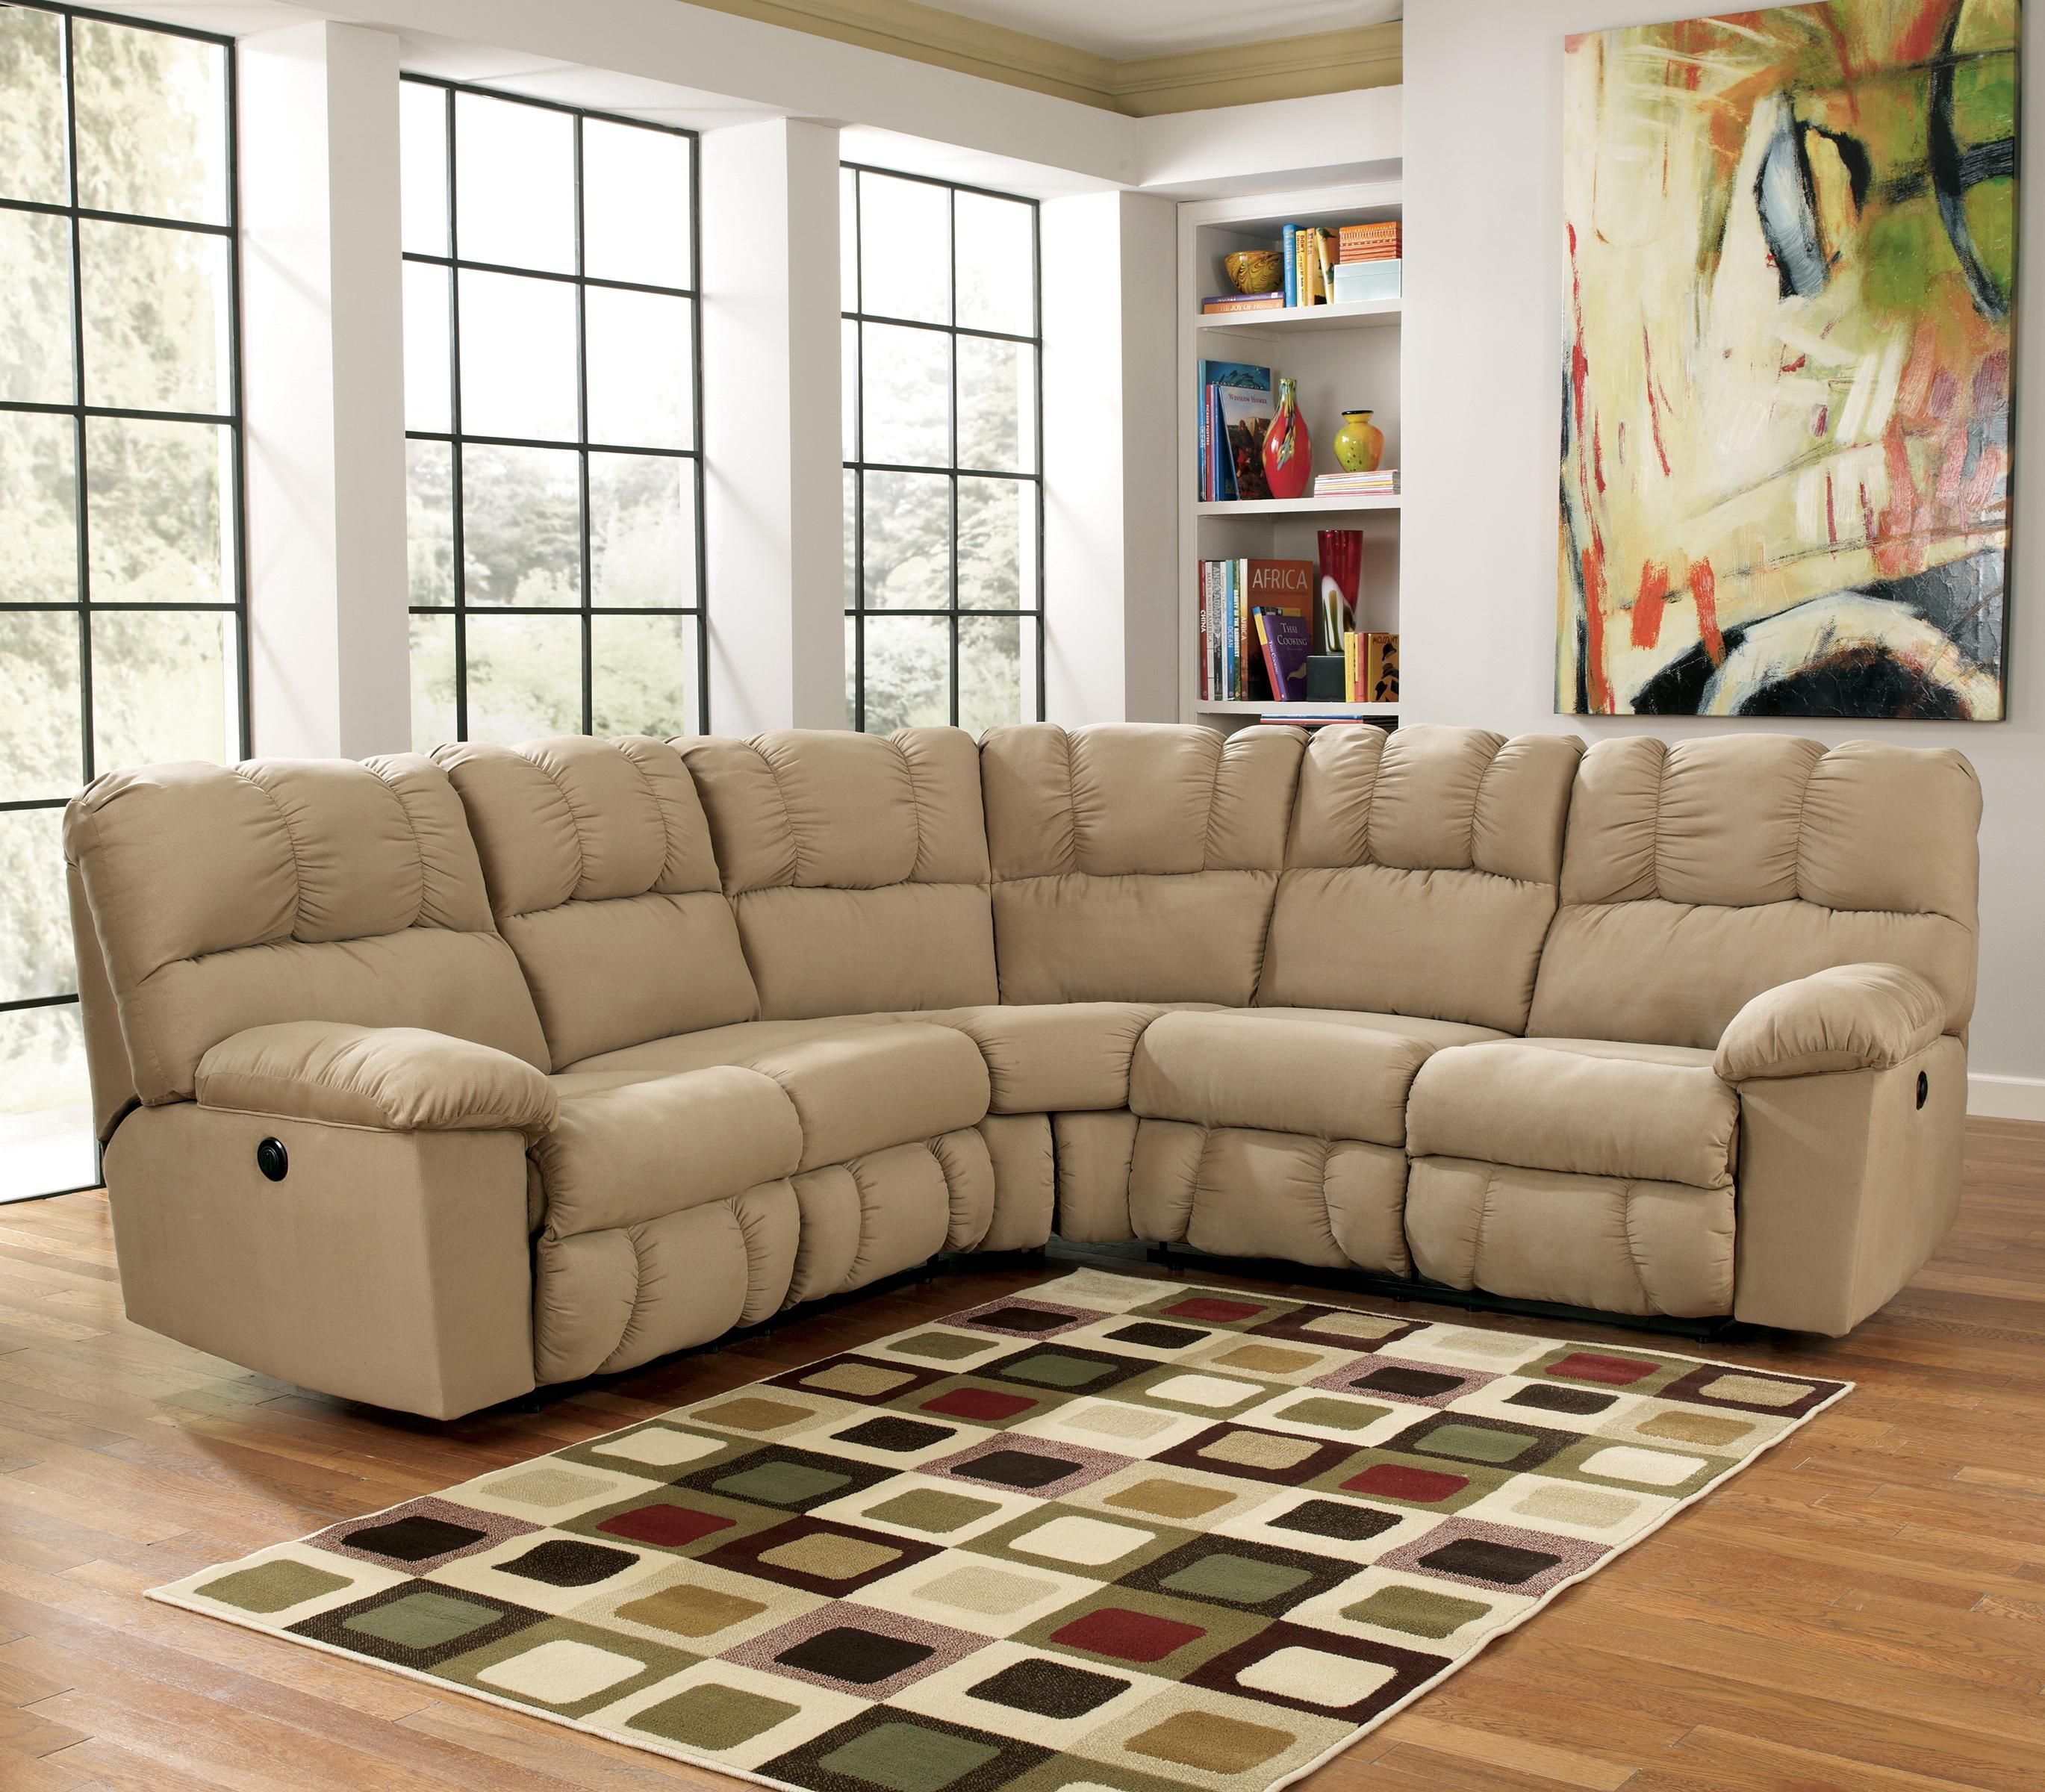 Lakesha Taupe 2 Piece Reclining Sectional by Signature Design by